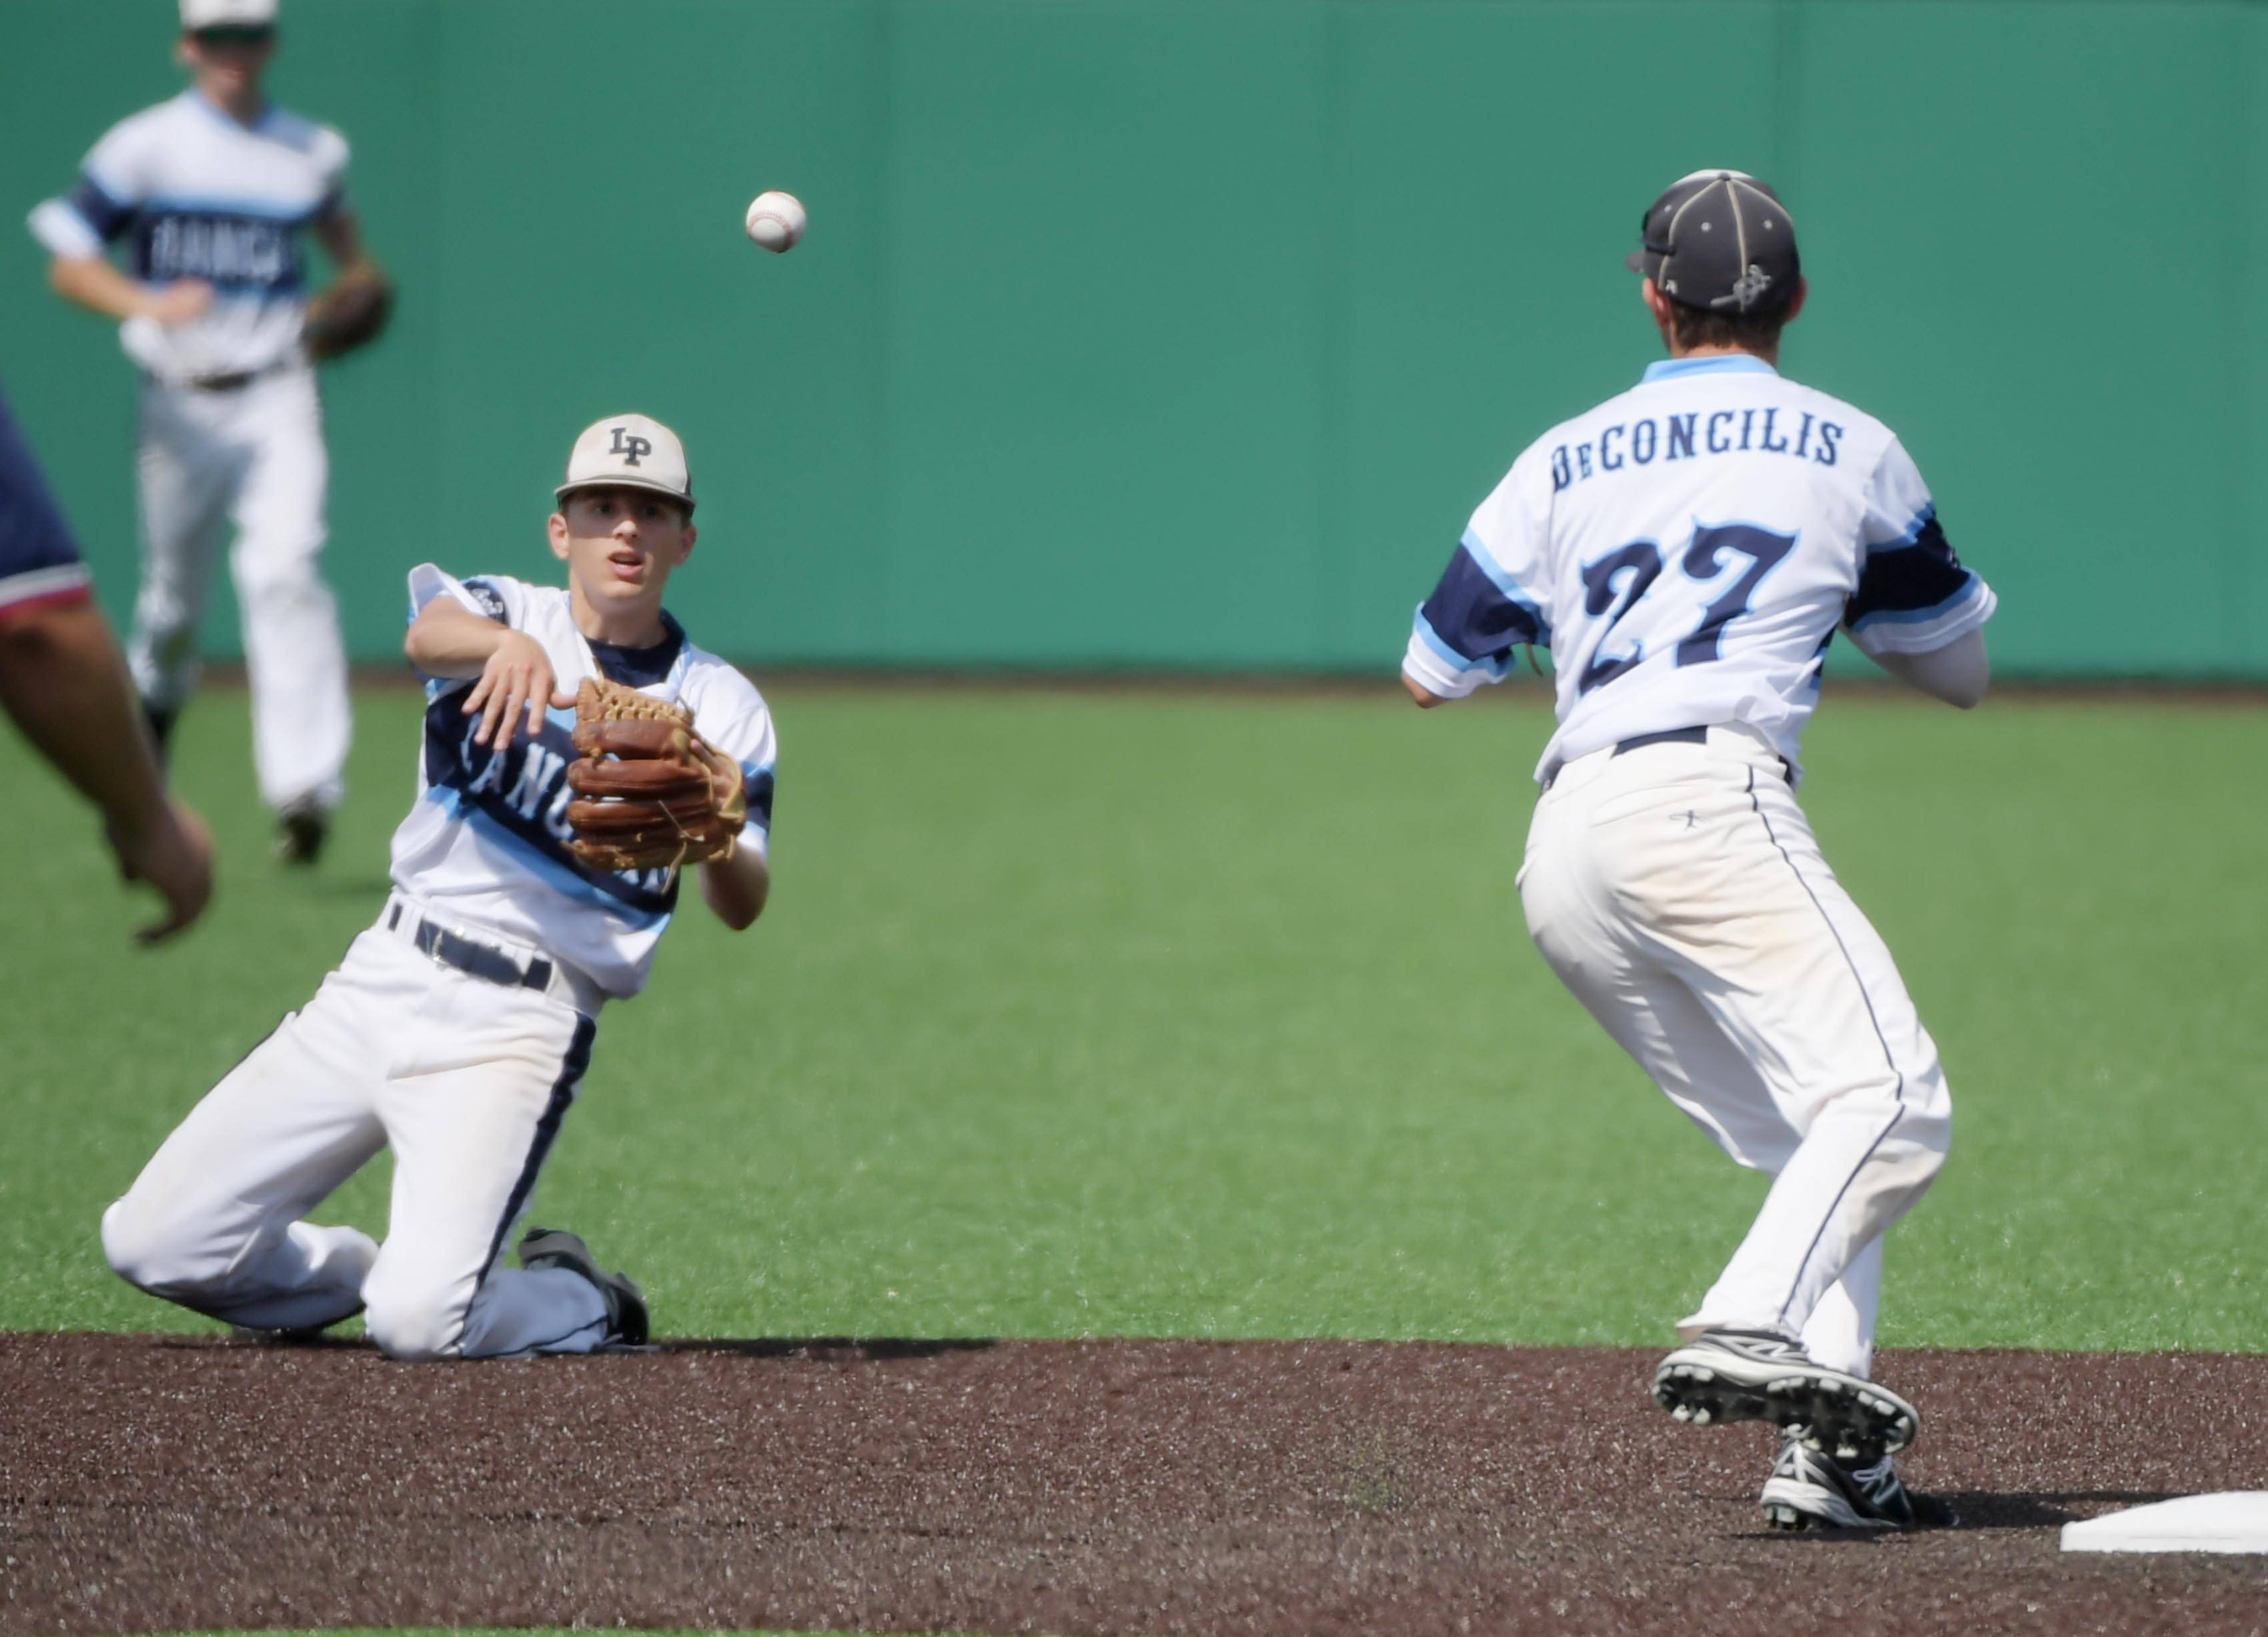 Lake Park second baseman John DeConcilis tosses the ball from his knees to his brother Anthony DeConcilis to force out Sandburg's Andrew Tenison to end the third inning in the Class 4A state baseball third place game at Route 66 Stadium in Joliet Saturday.